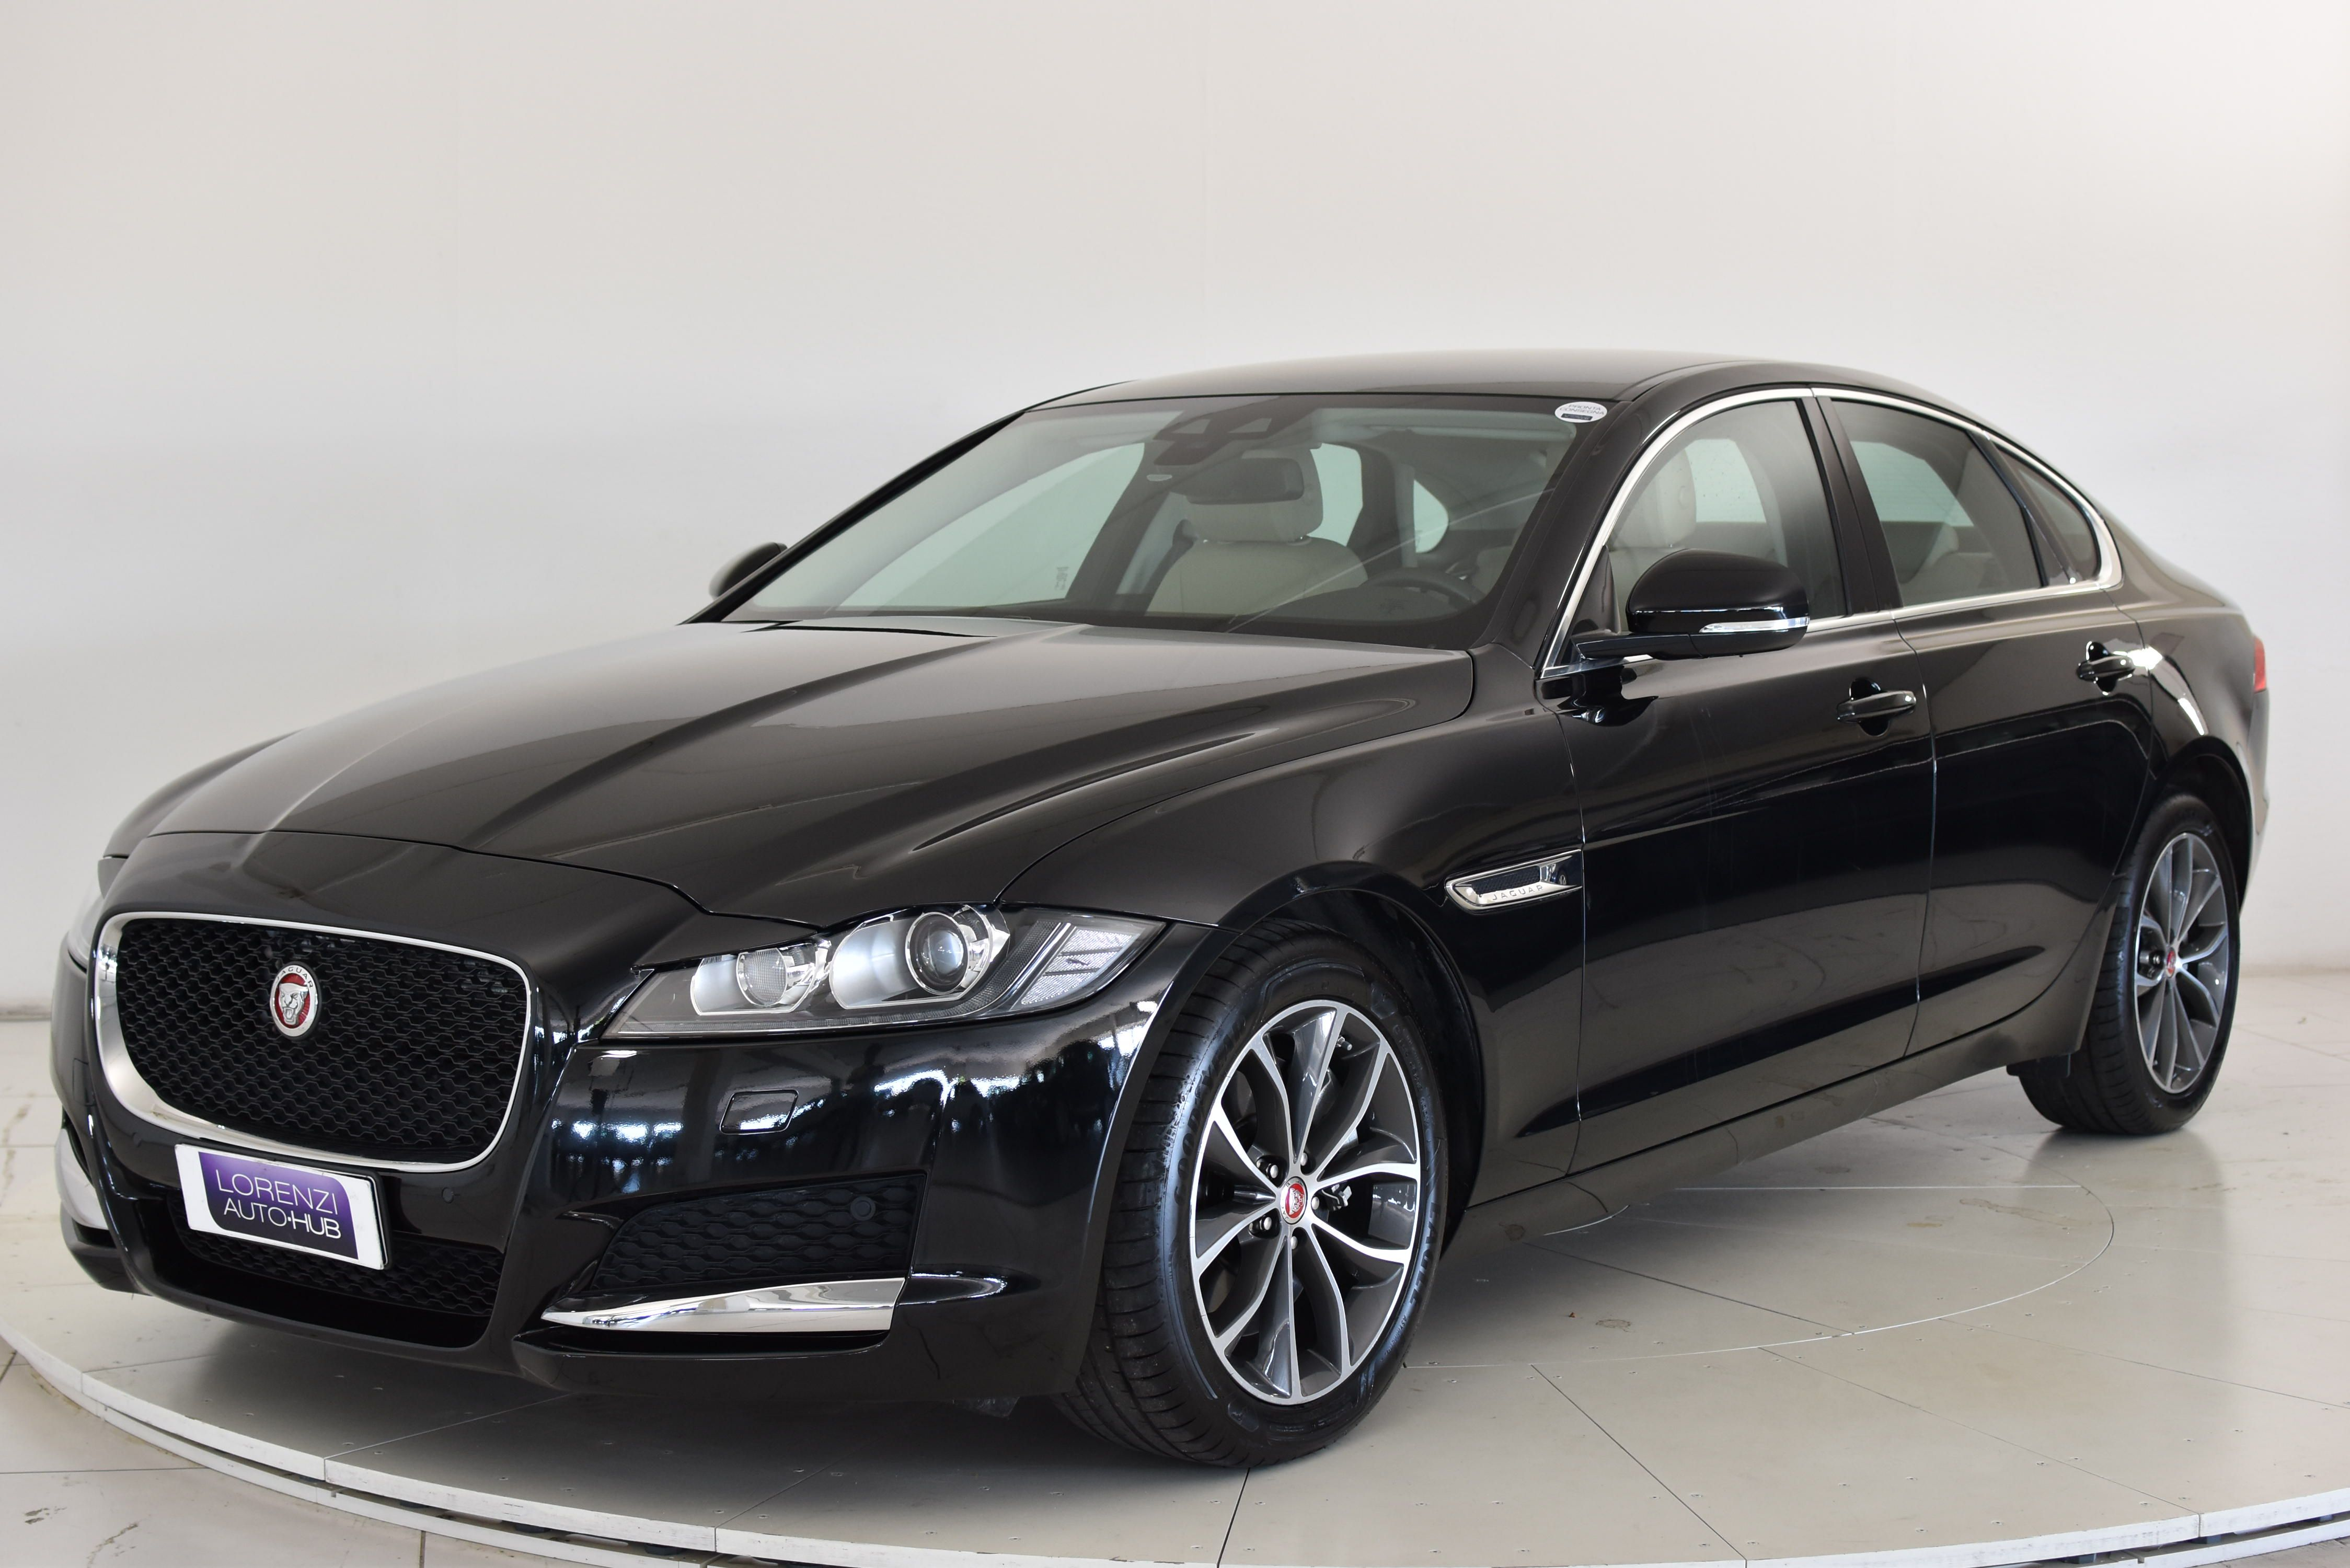 jaguar made is sale xf for used what supercharged a difference with up i custom big xfr forum came intake air this